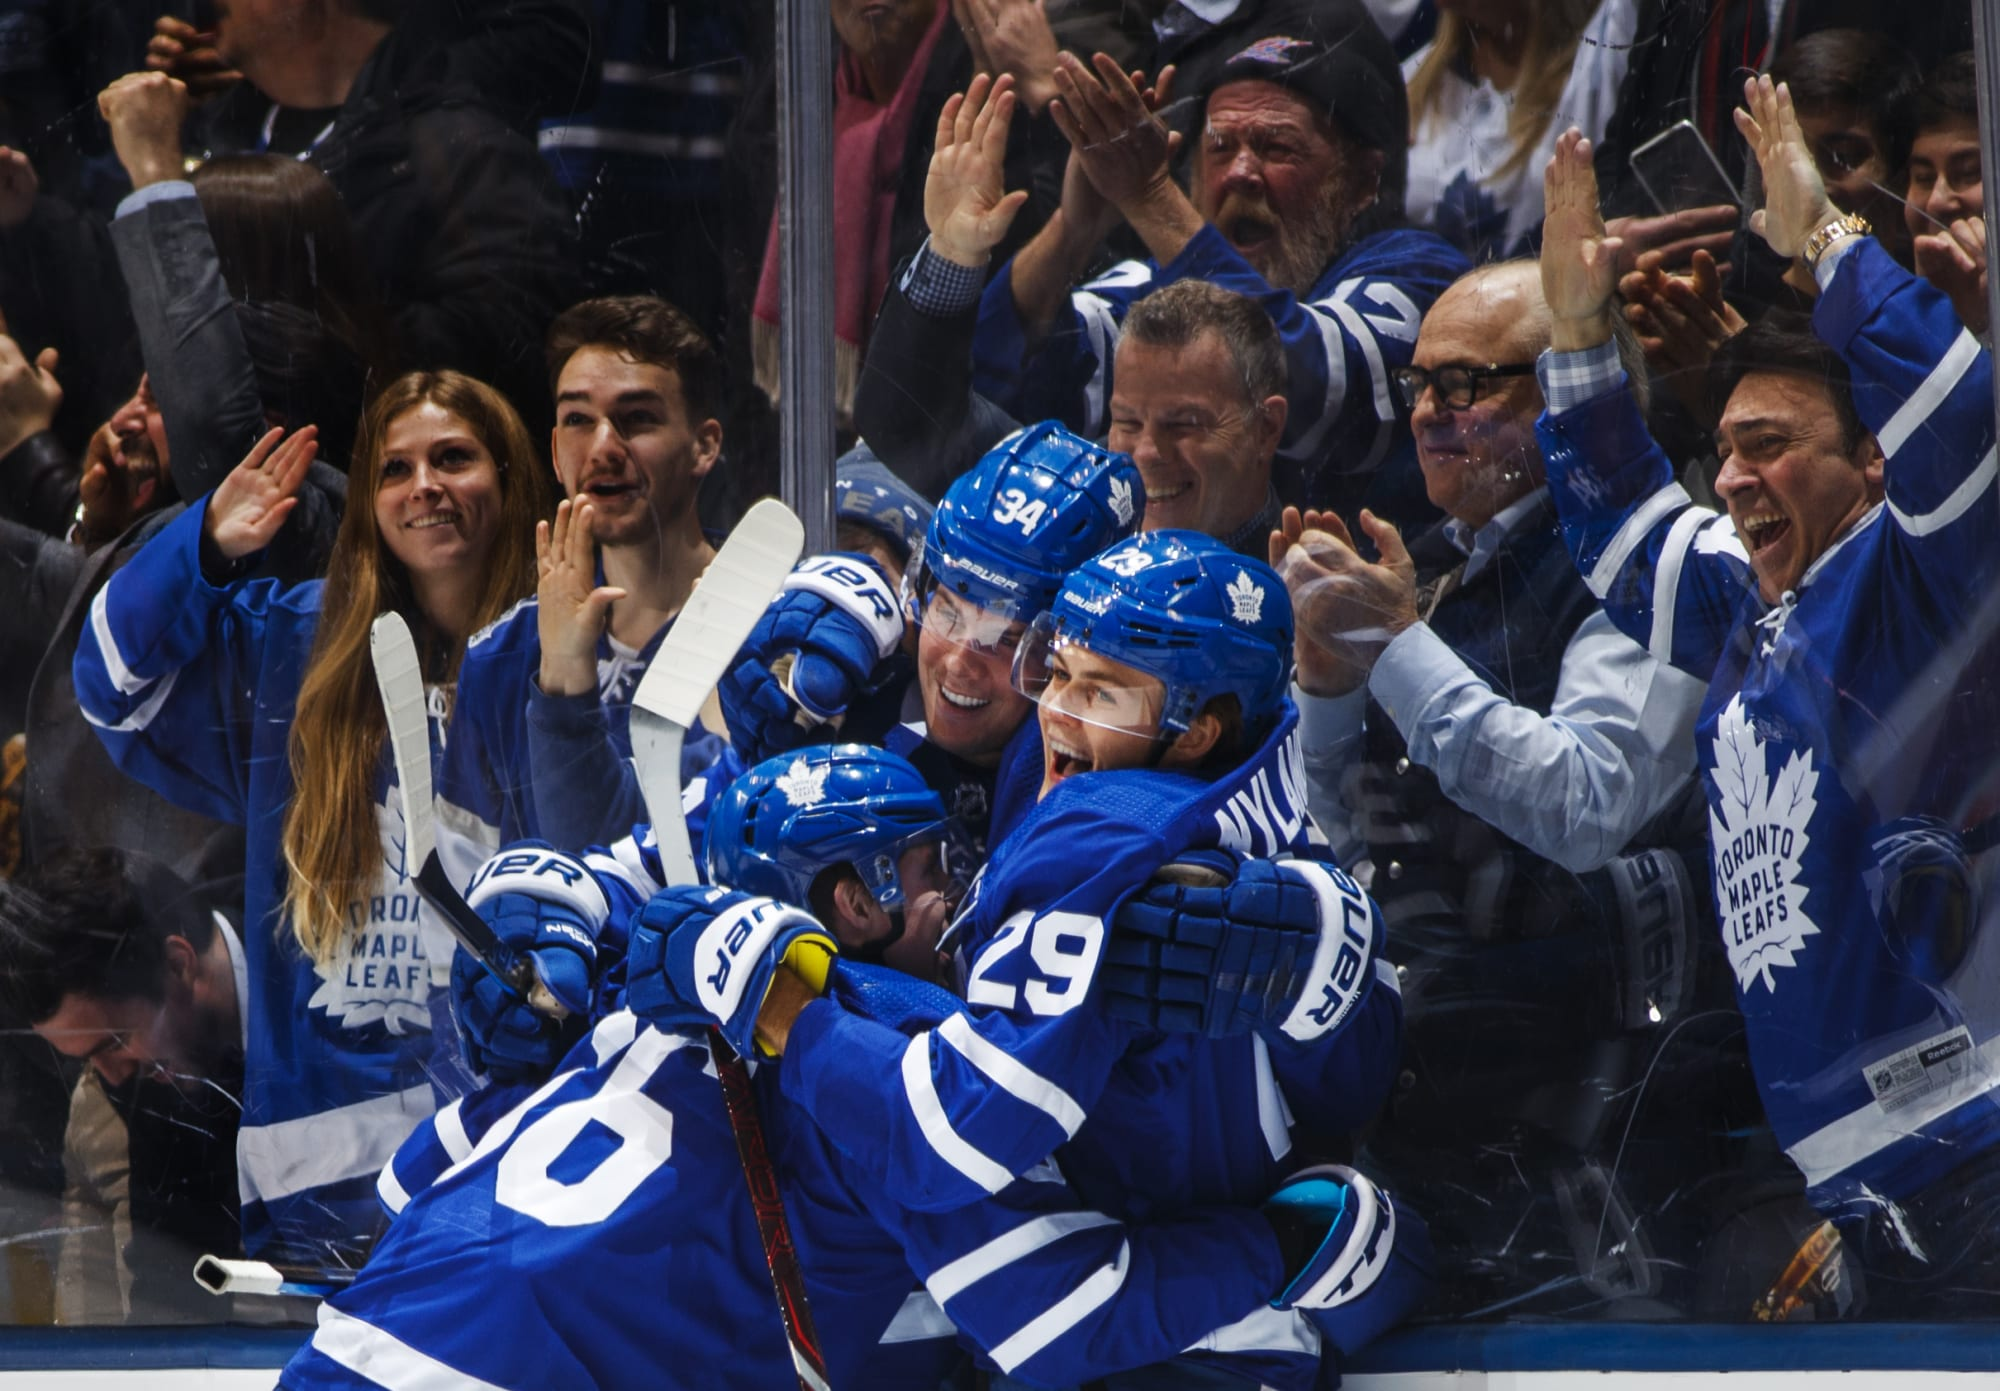 Toronto Maple Leafs Young Core Is The Best in NHL